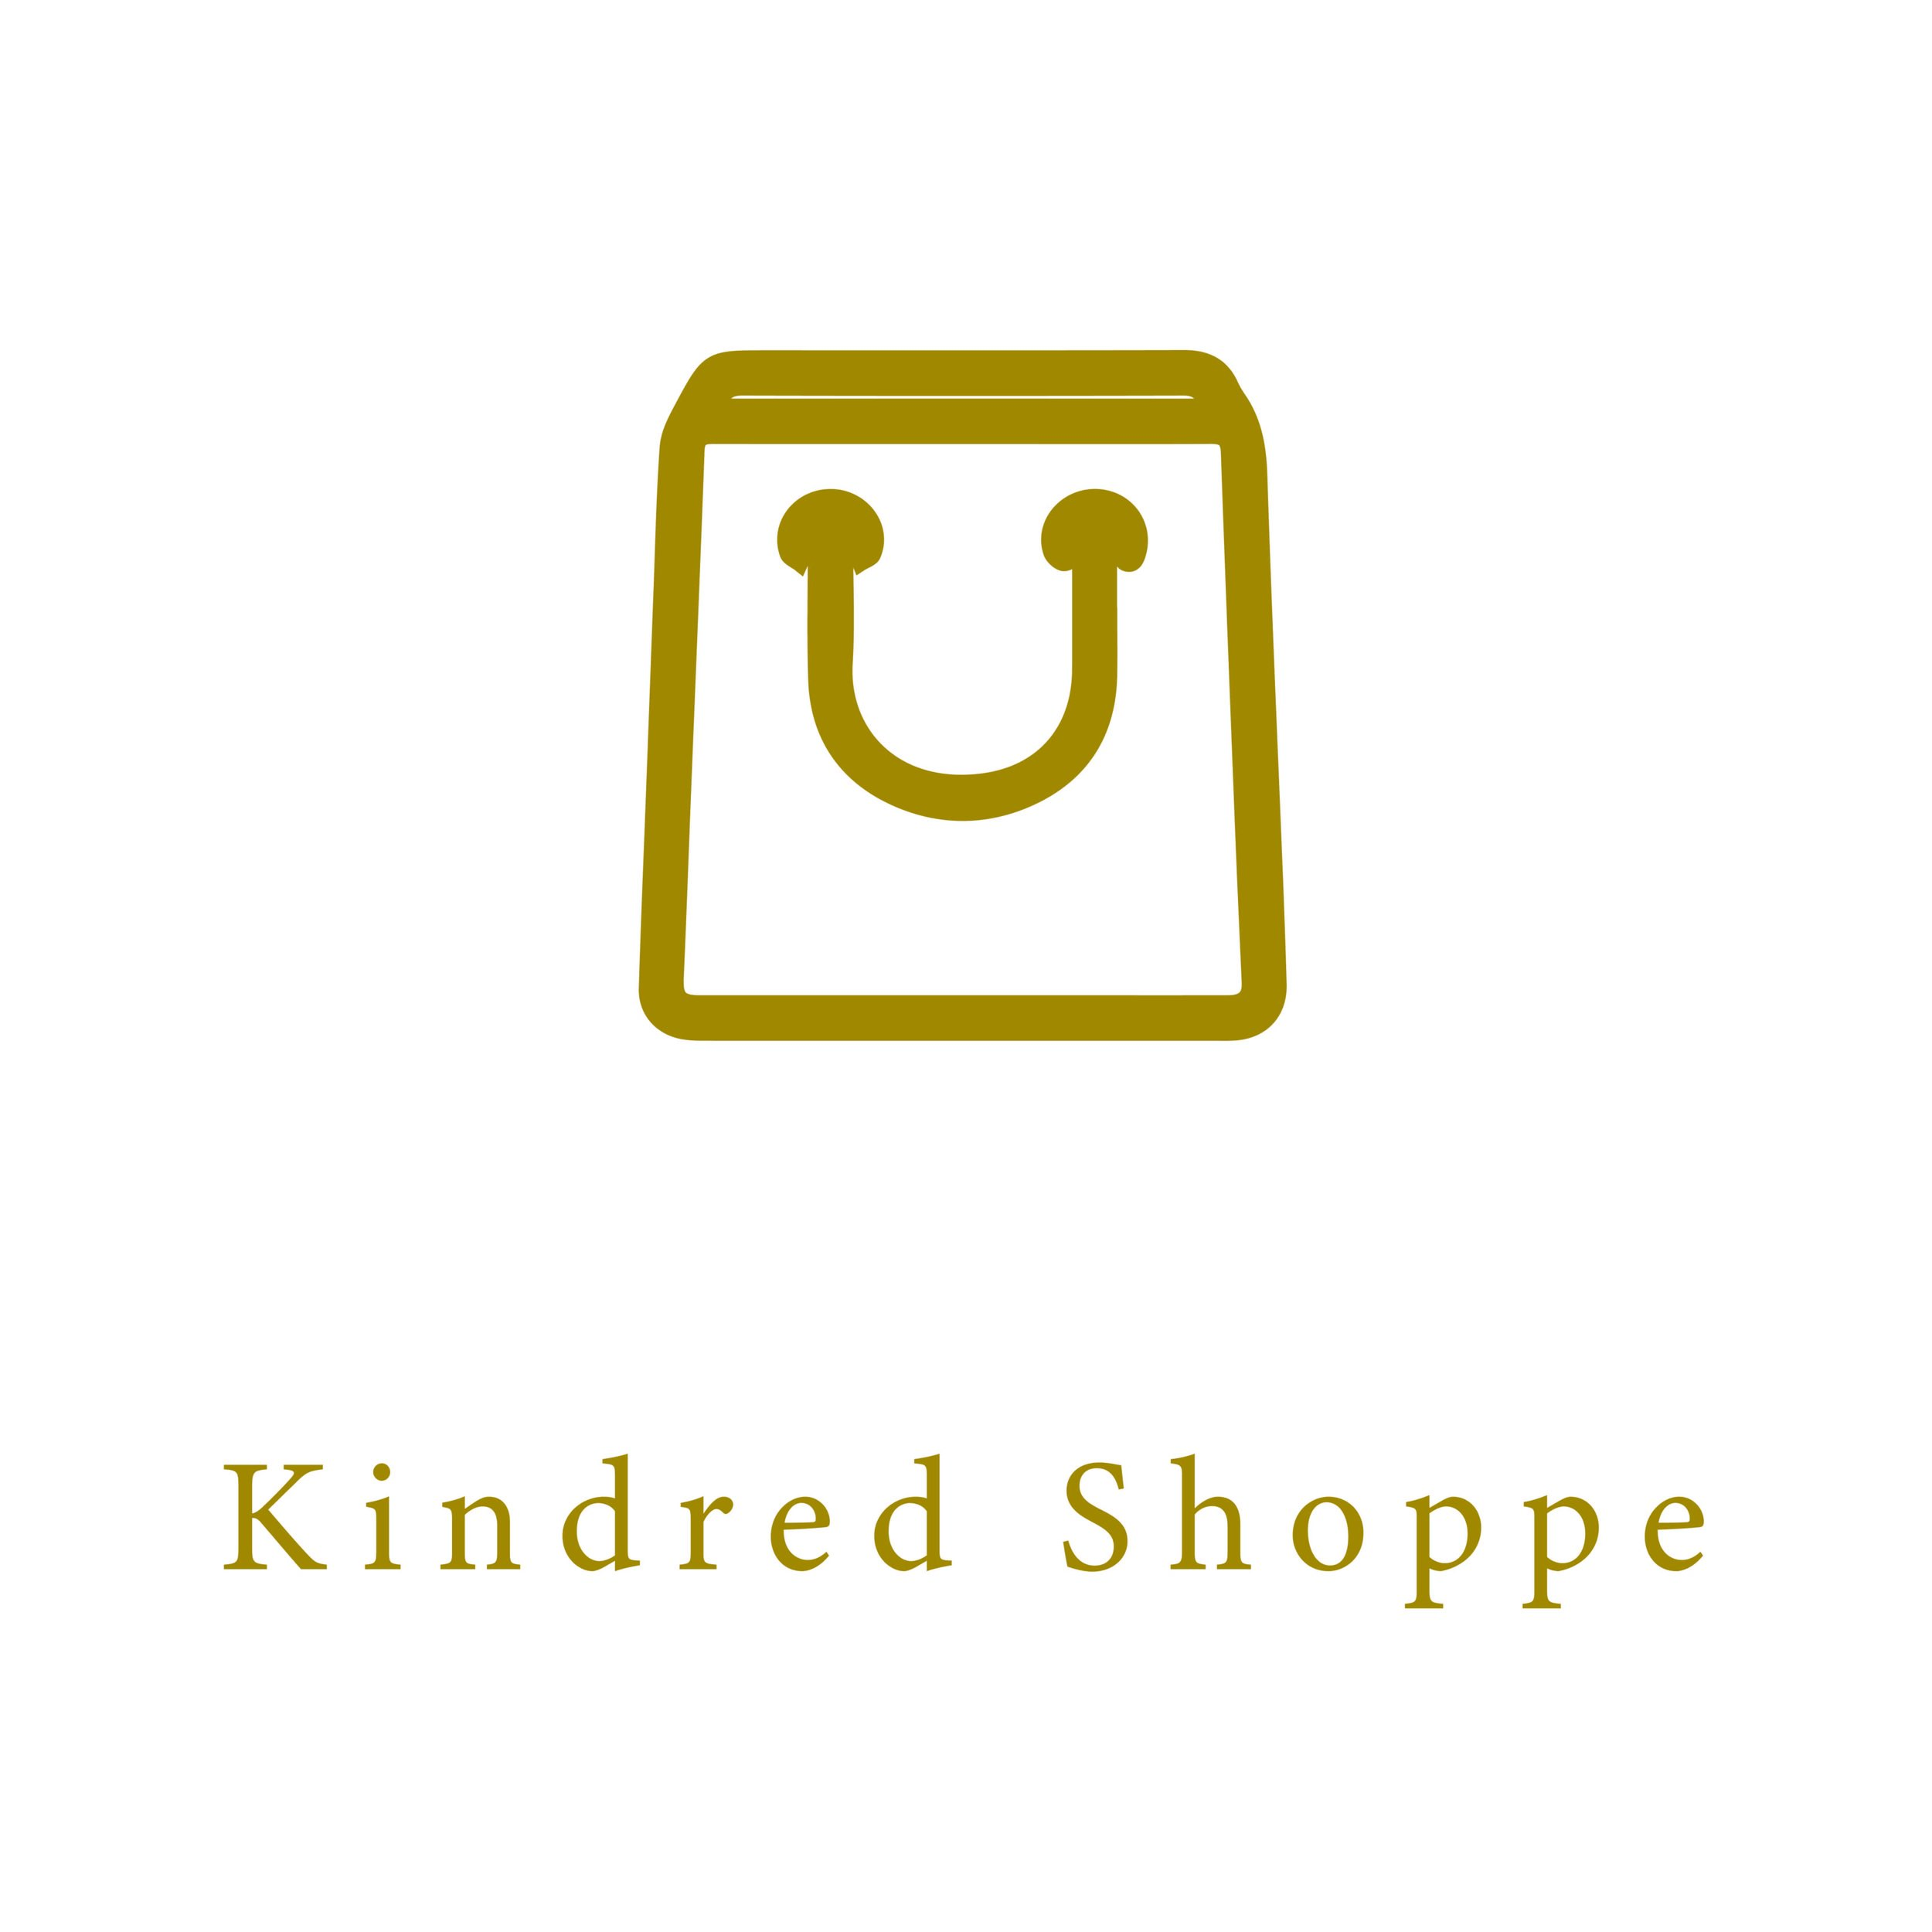 Kindred Page Logos-02.jpg